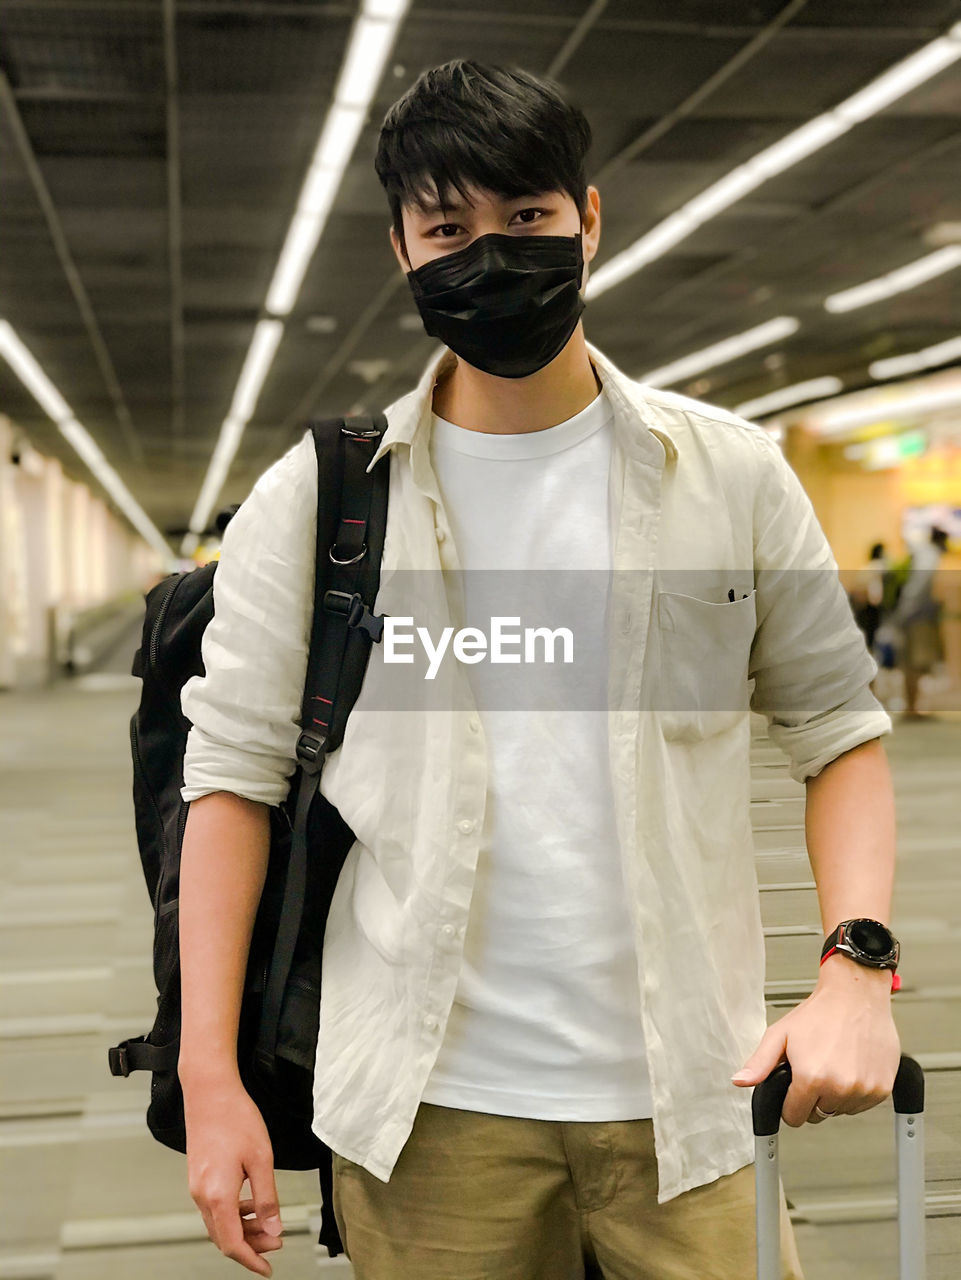 Portrait of young man wearing mask standing at airport